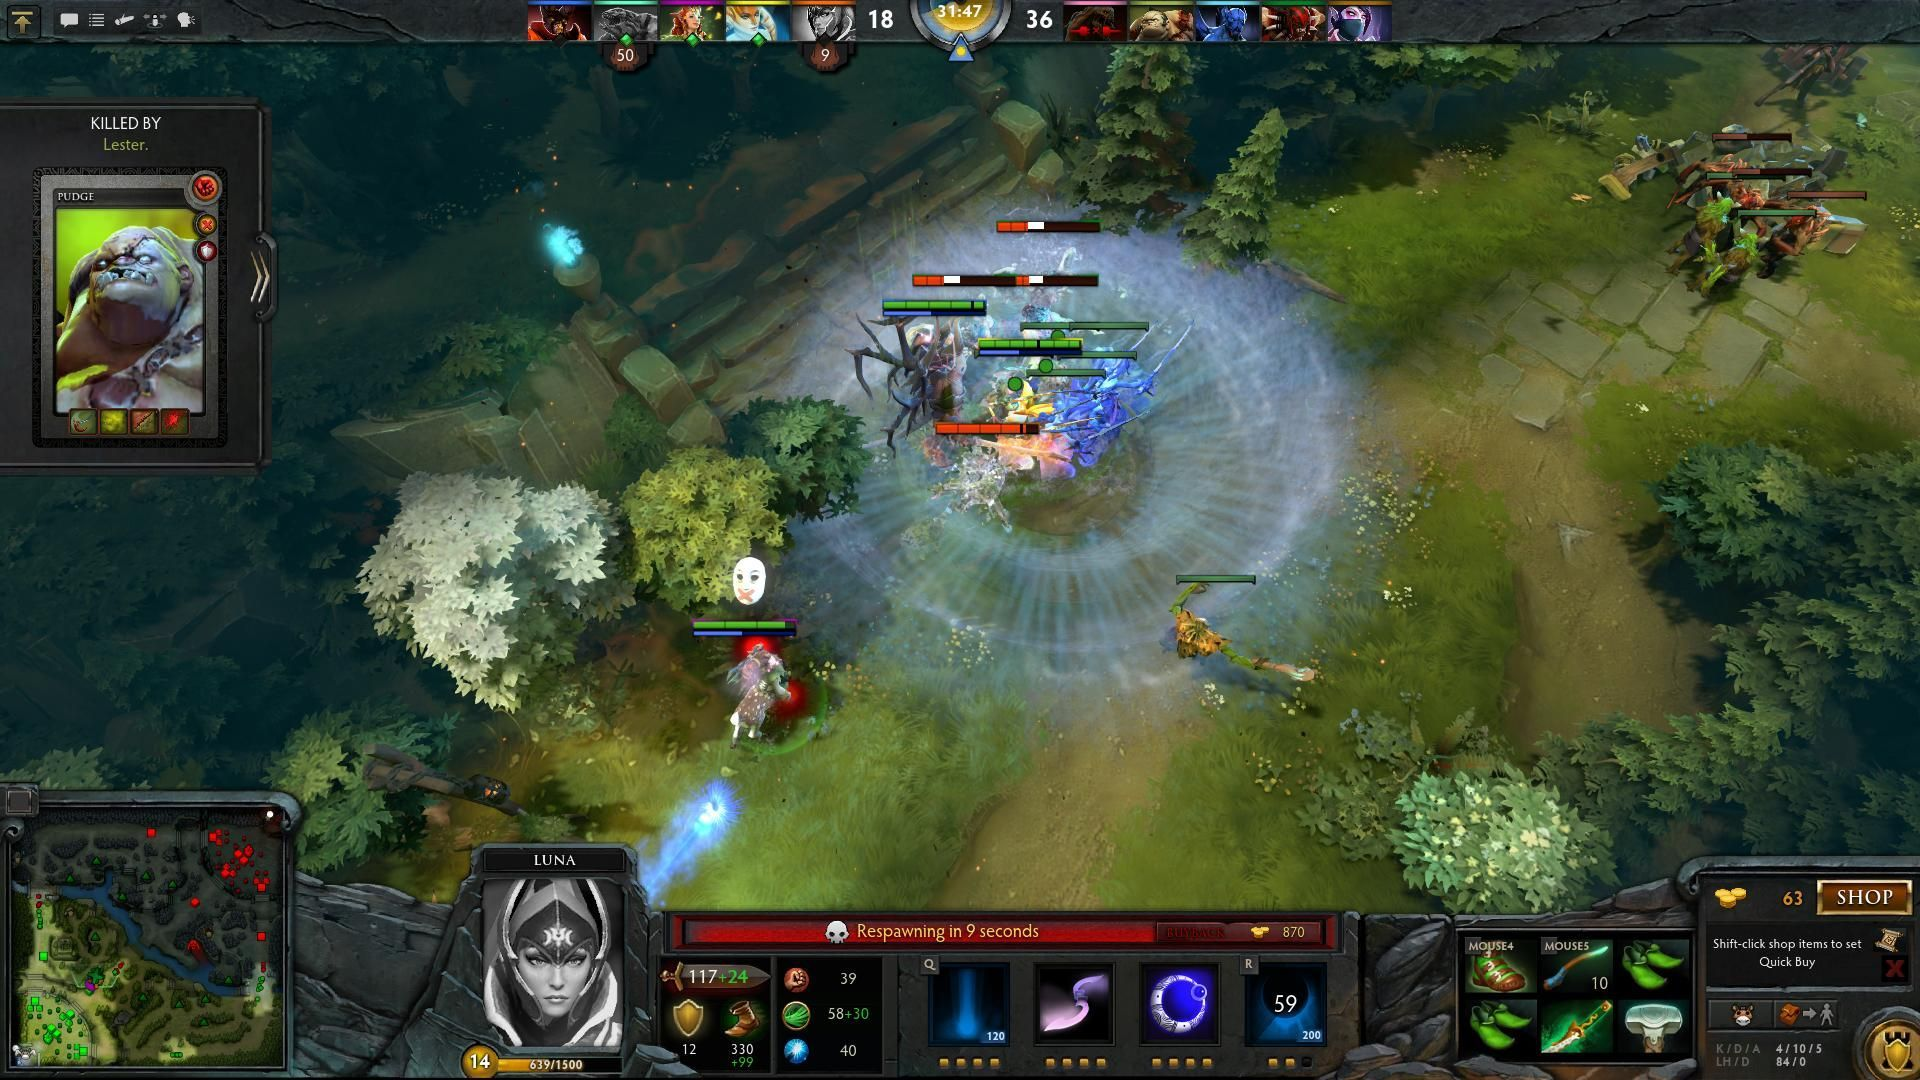 negative effects of dota Essays - largest database of quality sample essays and research papers on negative effects of playing dota.